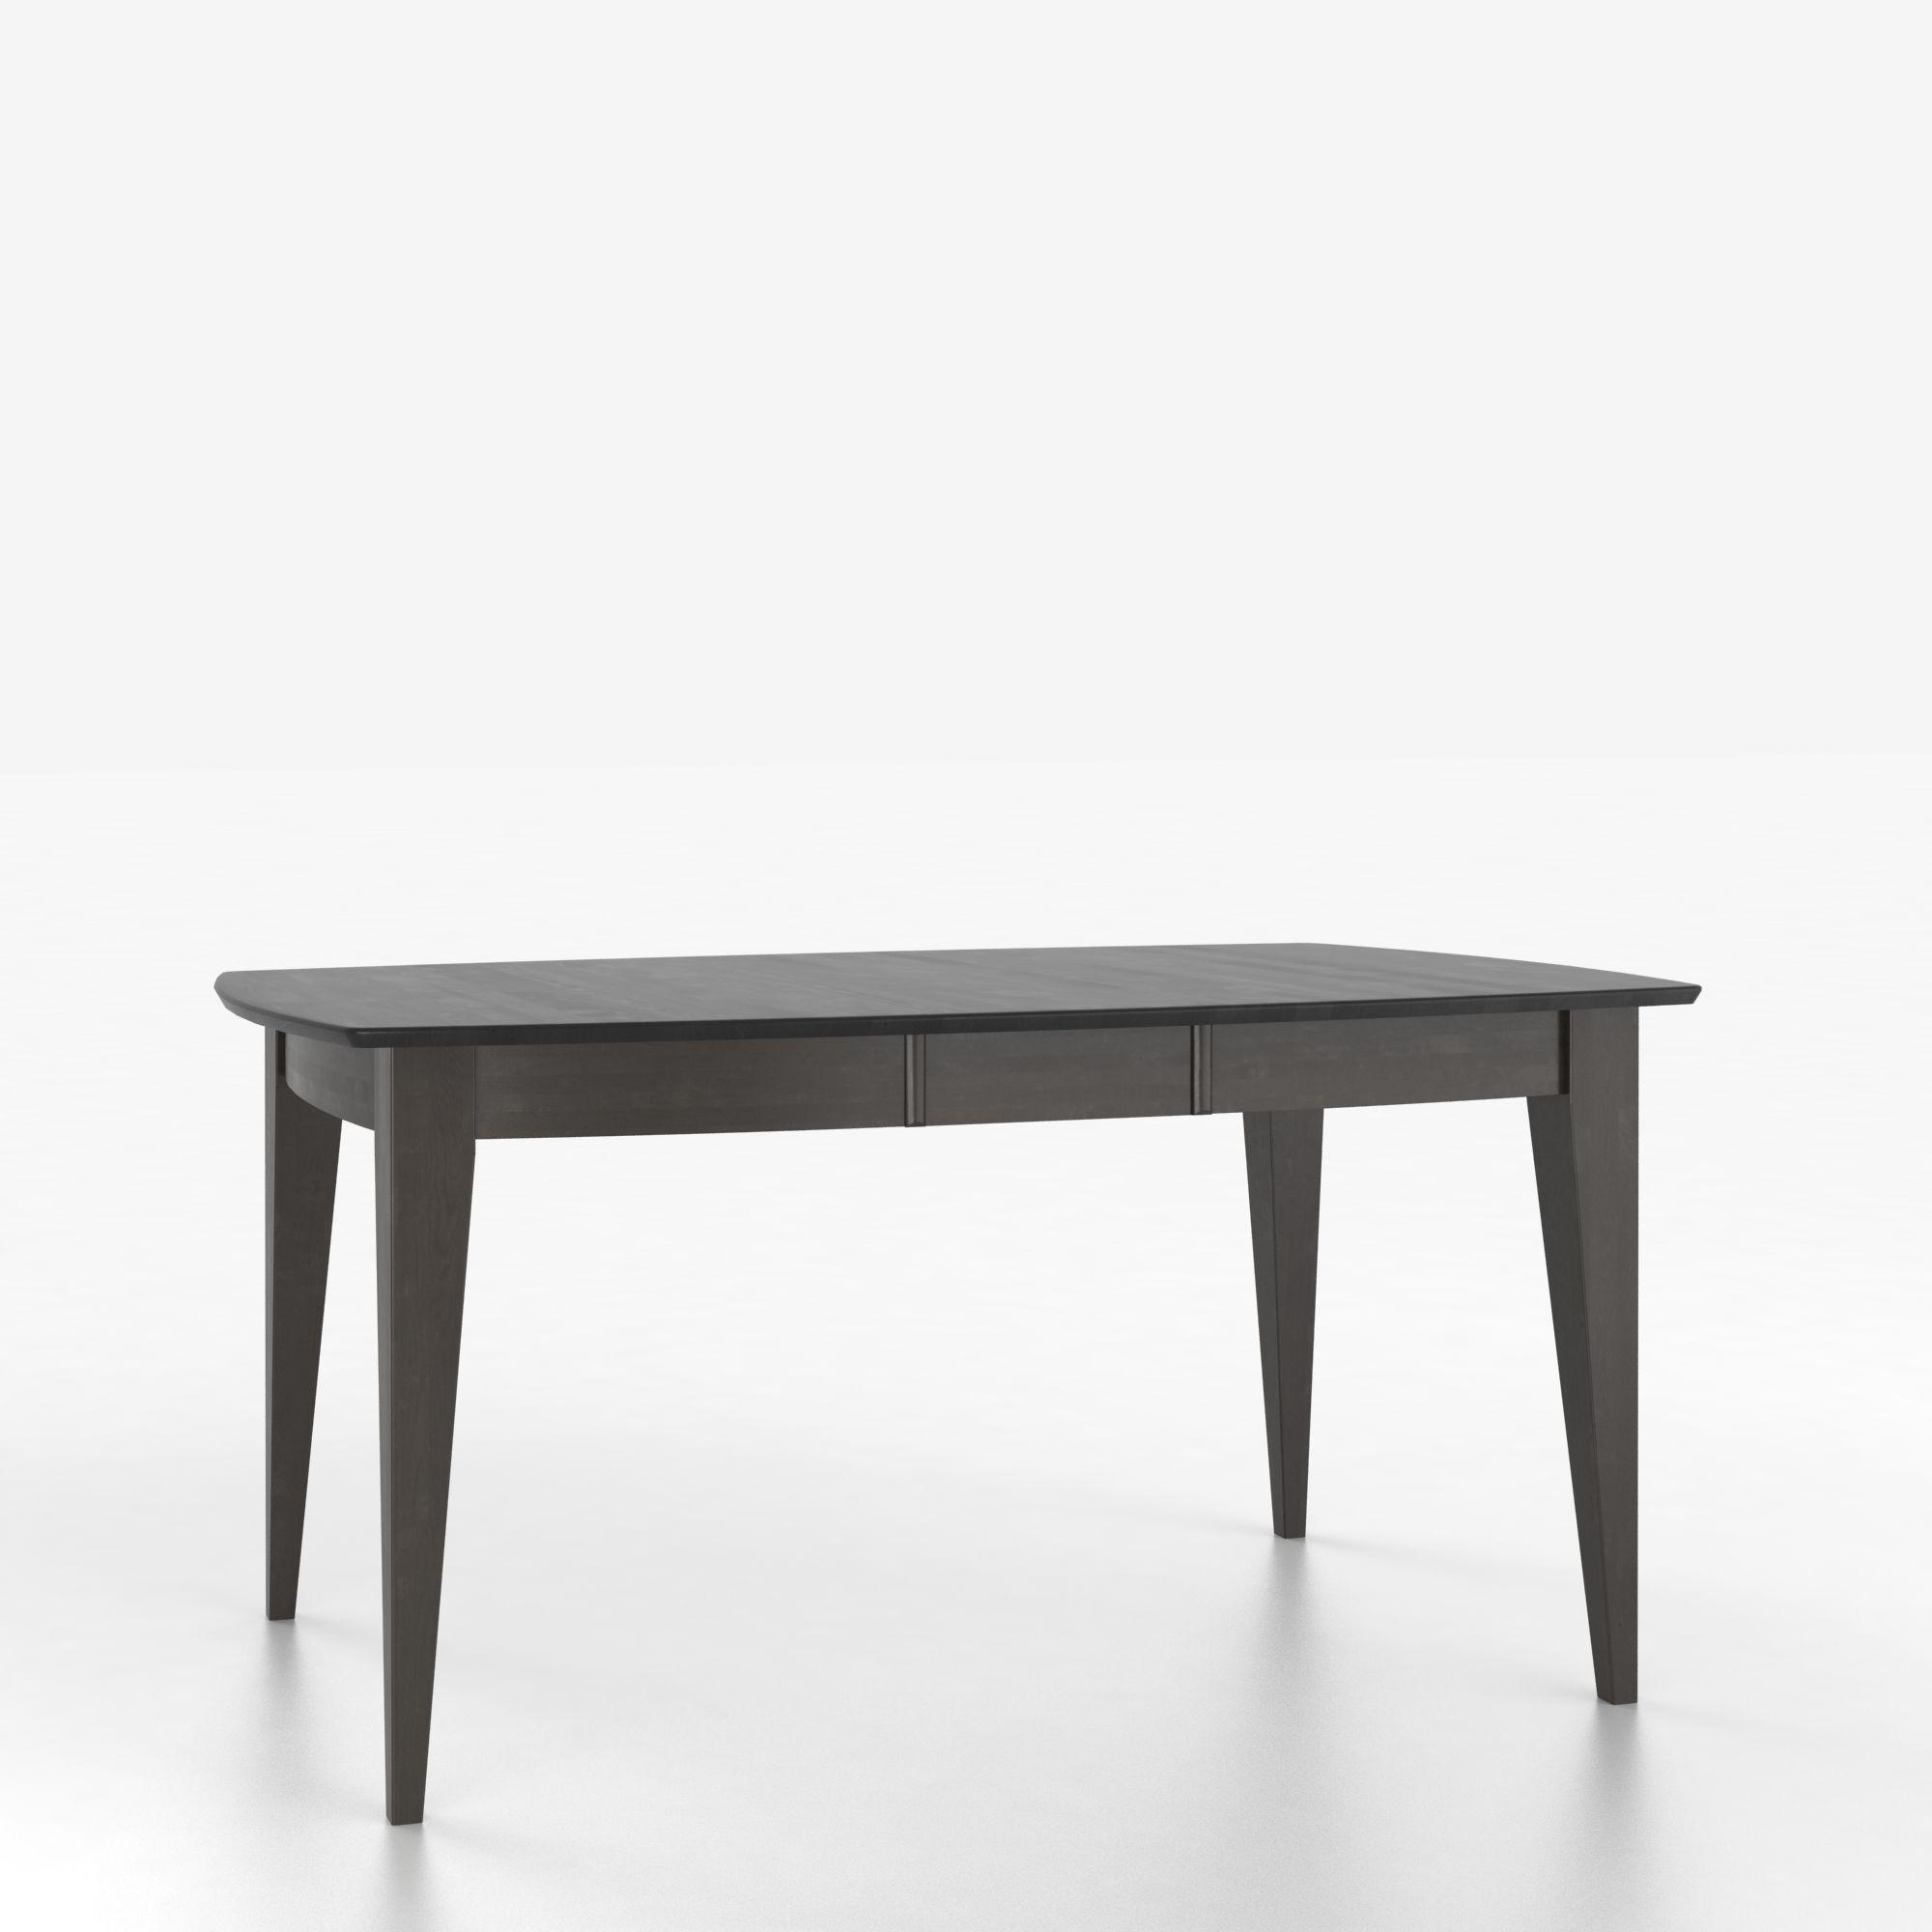 Custom Dining Tables Customizable Boat Shape Table with Legs by Canadel at Dinette Depot